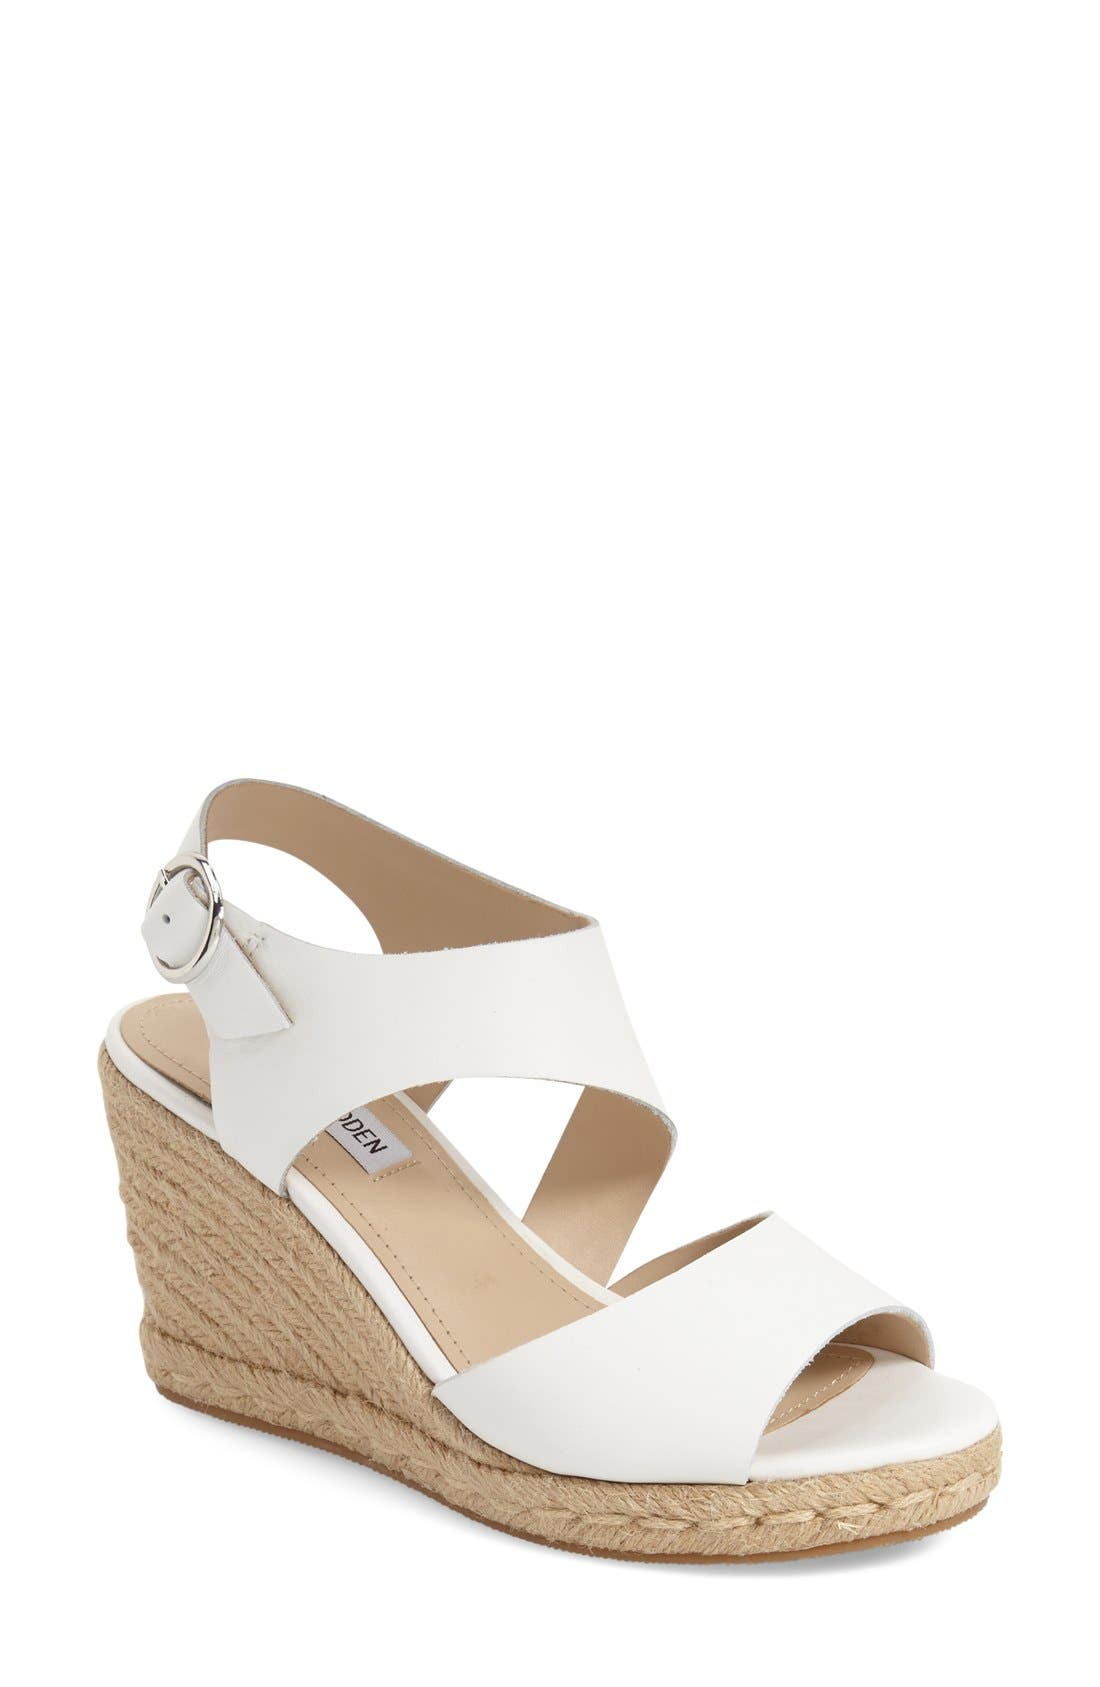 Alternate Image 1 Selected - Steve Madden 'Wavi' Espadrille Wedge Sandal (Women)